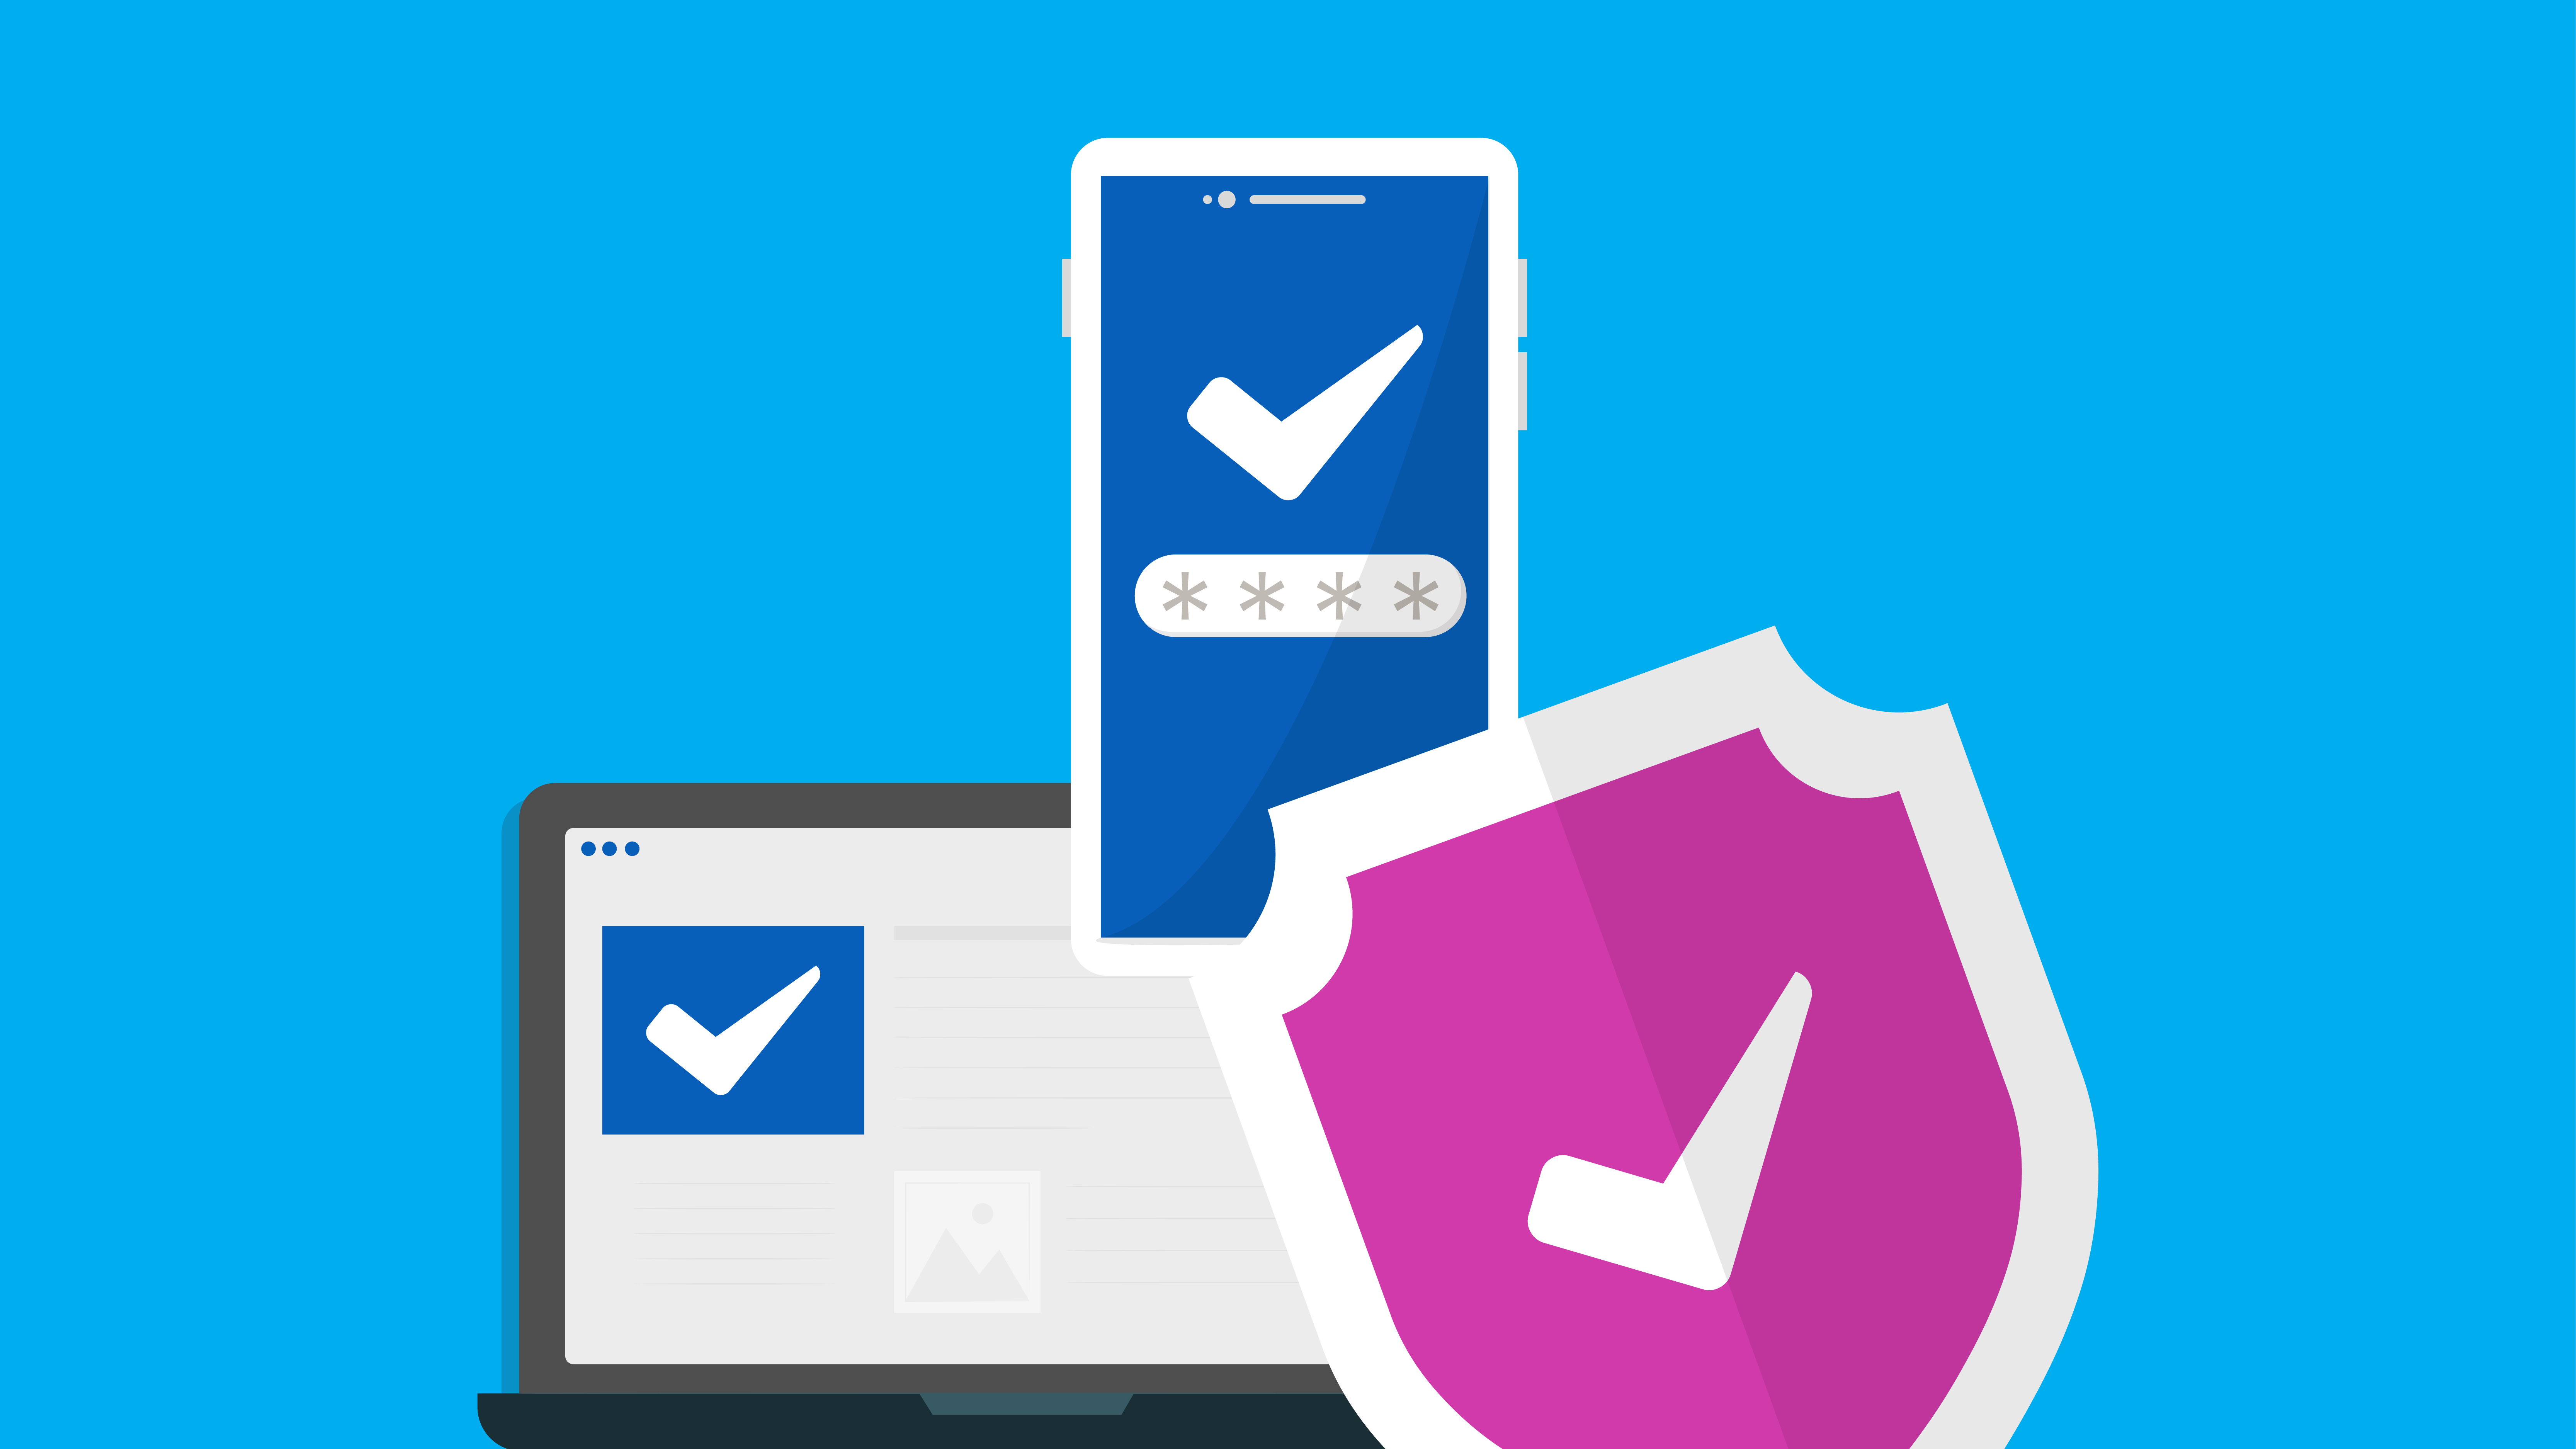 Authentication and security ticks representing Microsoft Teams's safety measures